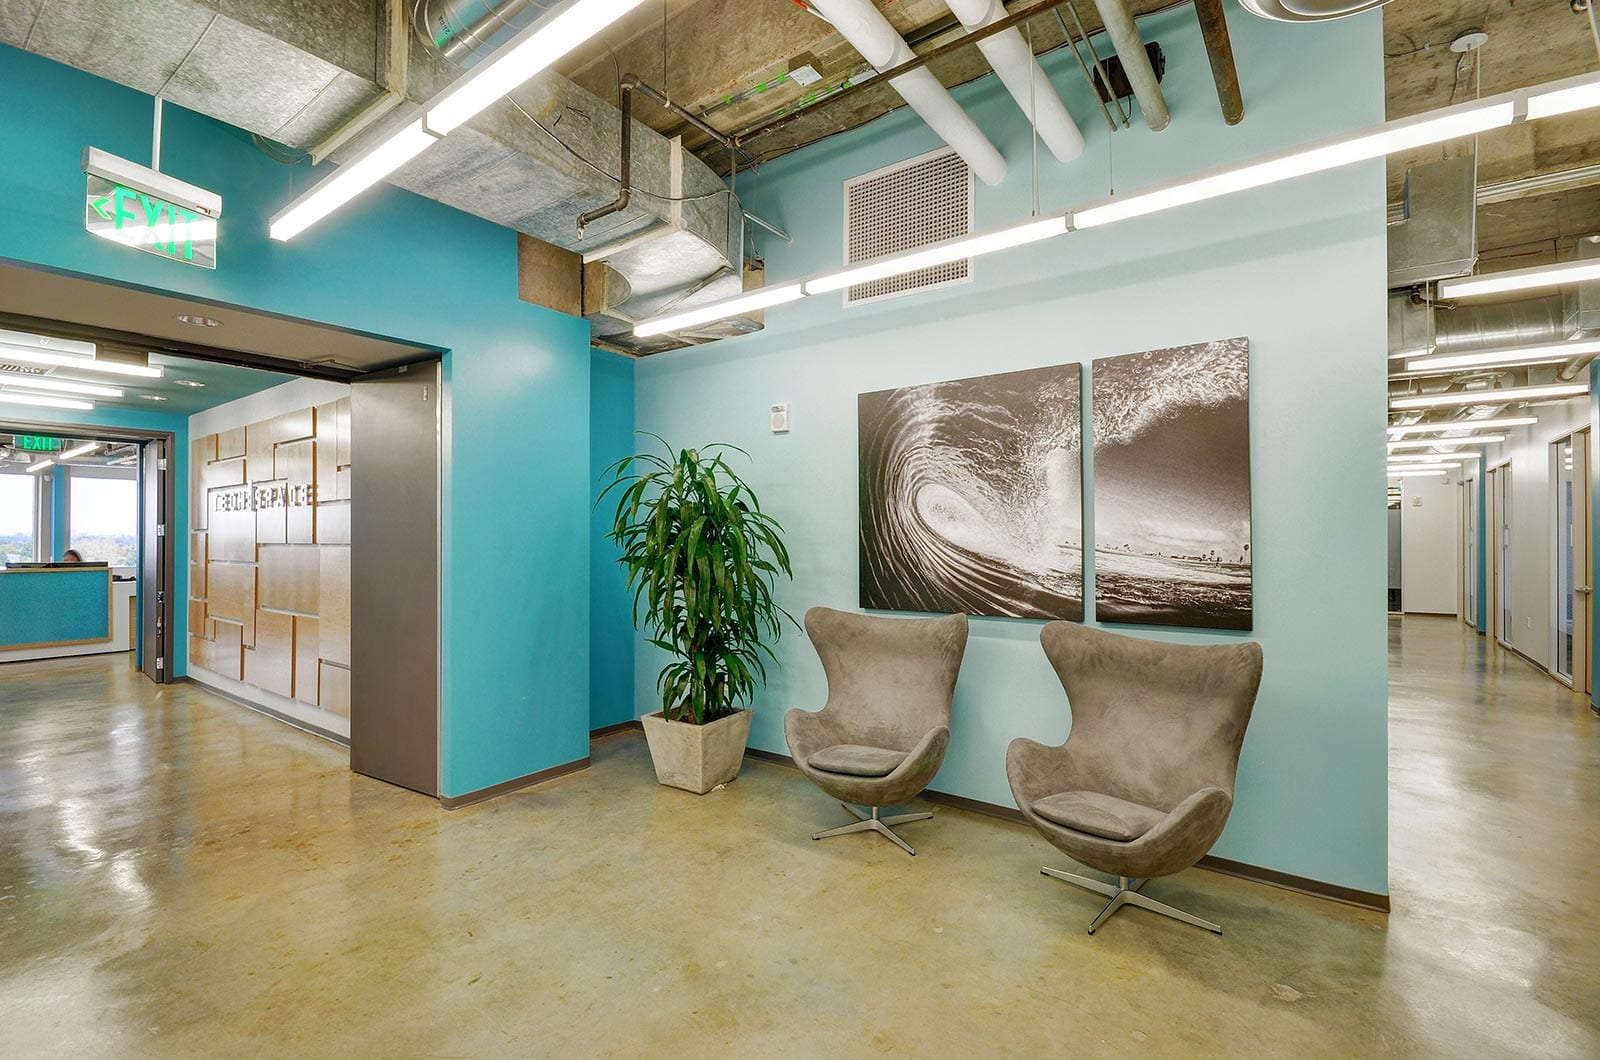 Teal-Wall-Painted-Office-Hallway-Commercial-Real-Estate-Virtual-Tour-Office-Building-Virtual-Tours